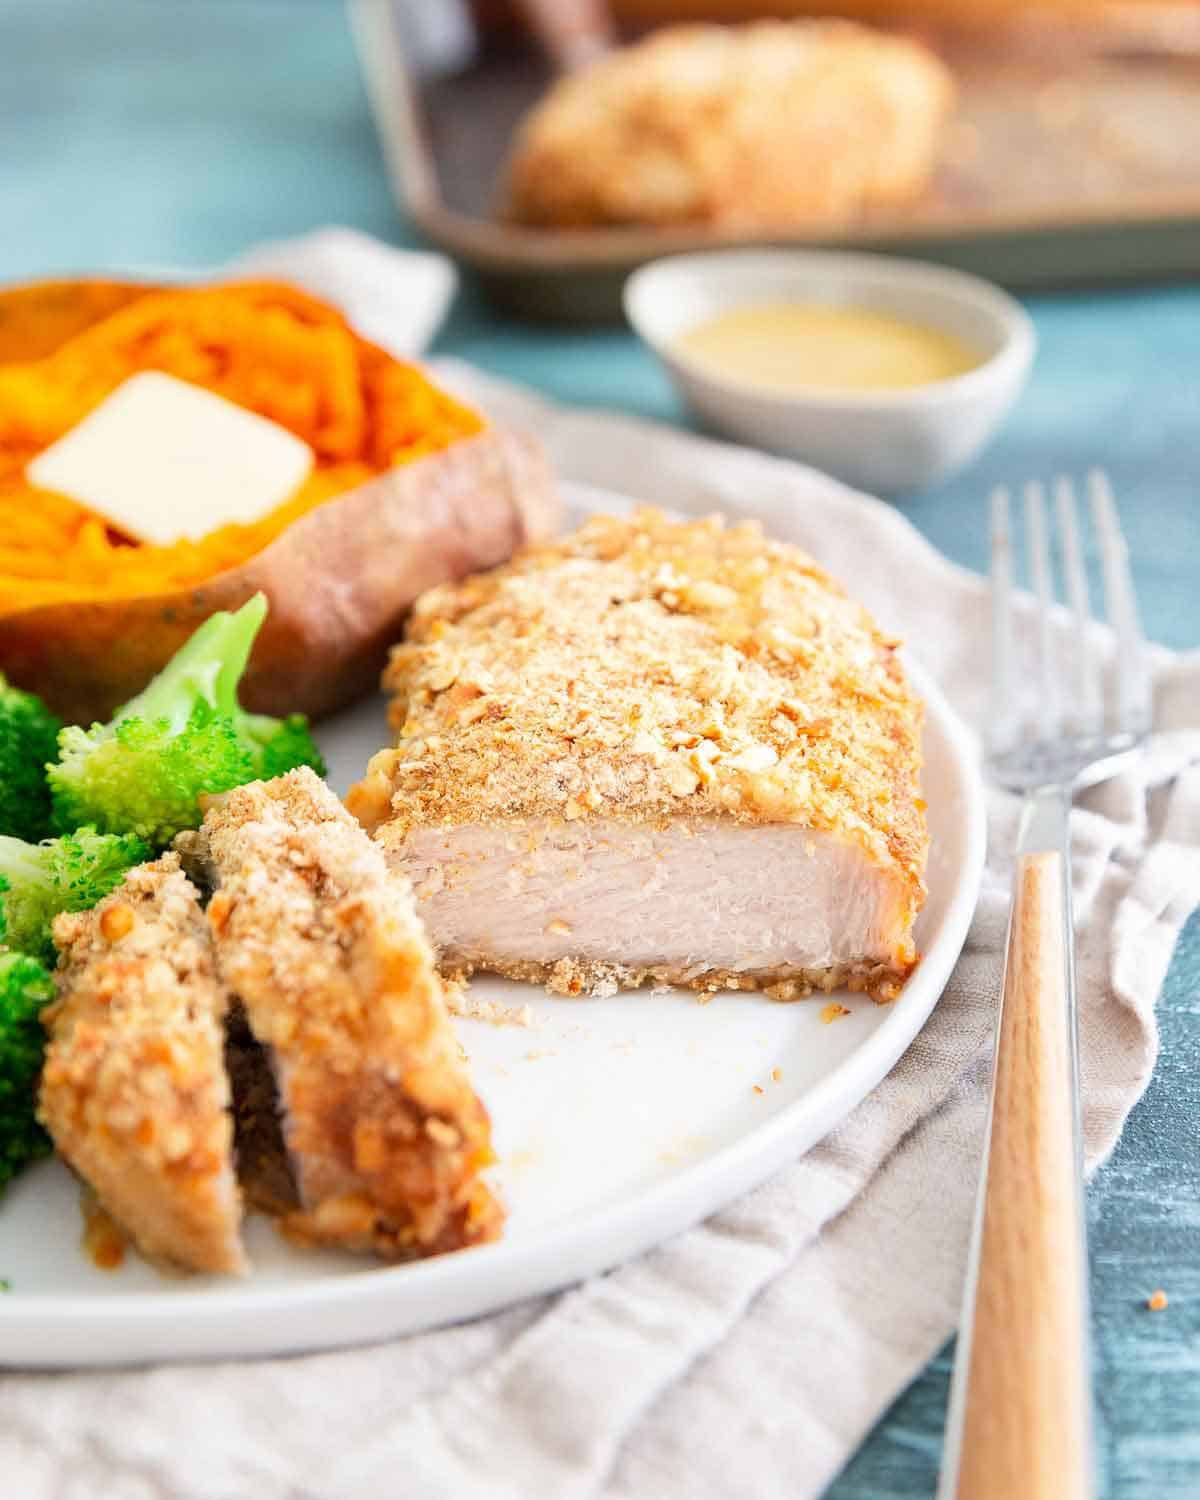 Pretzel crusted baked pork chops are an easy and healthy dinner recipe everyone will love.